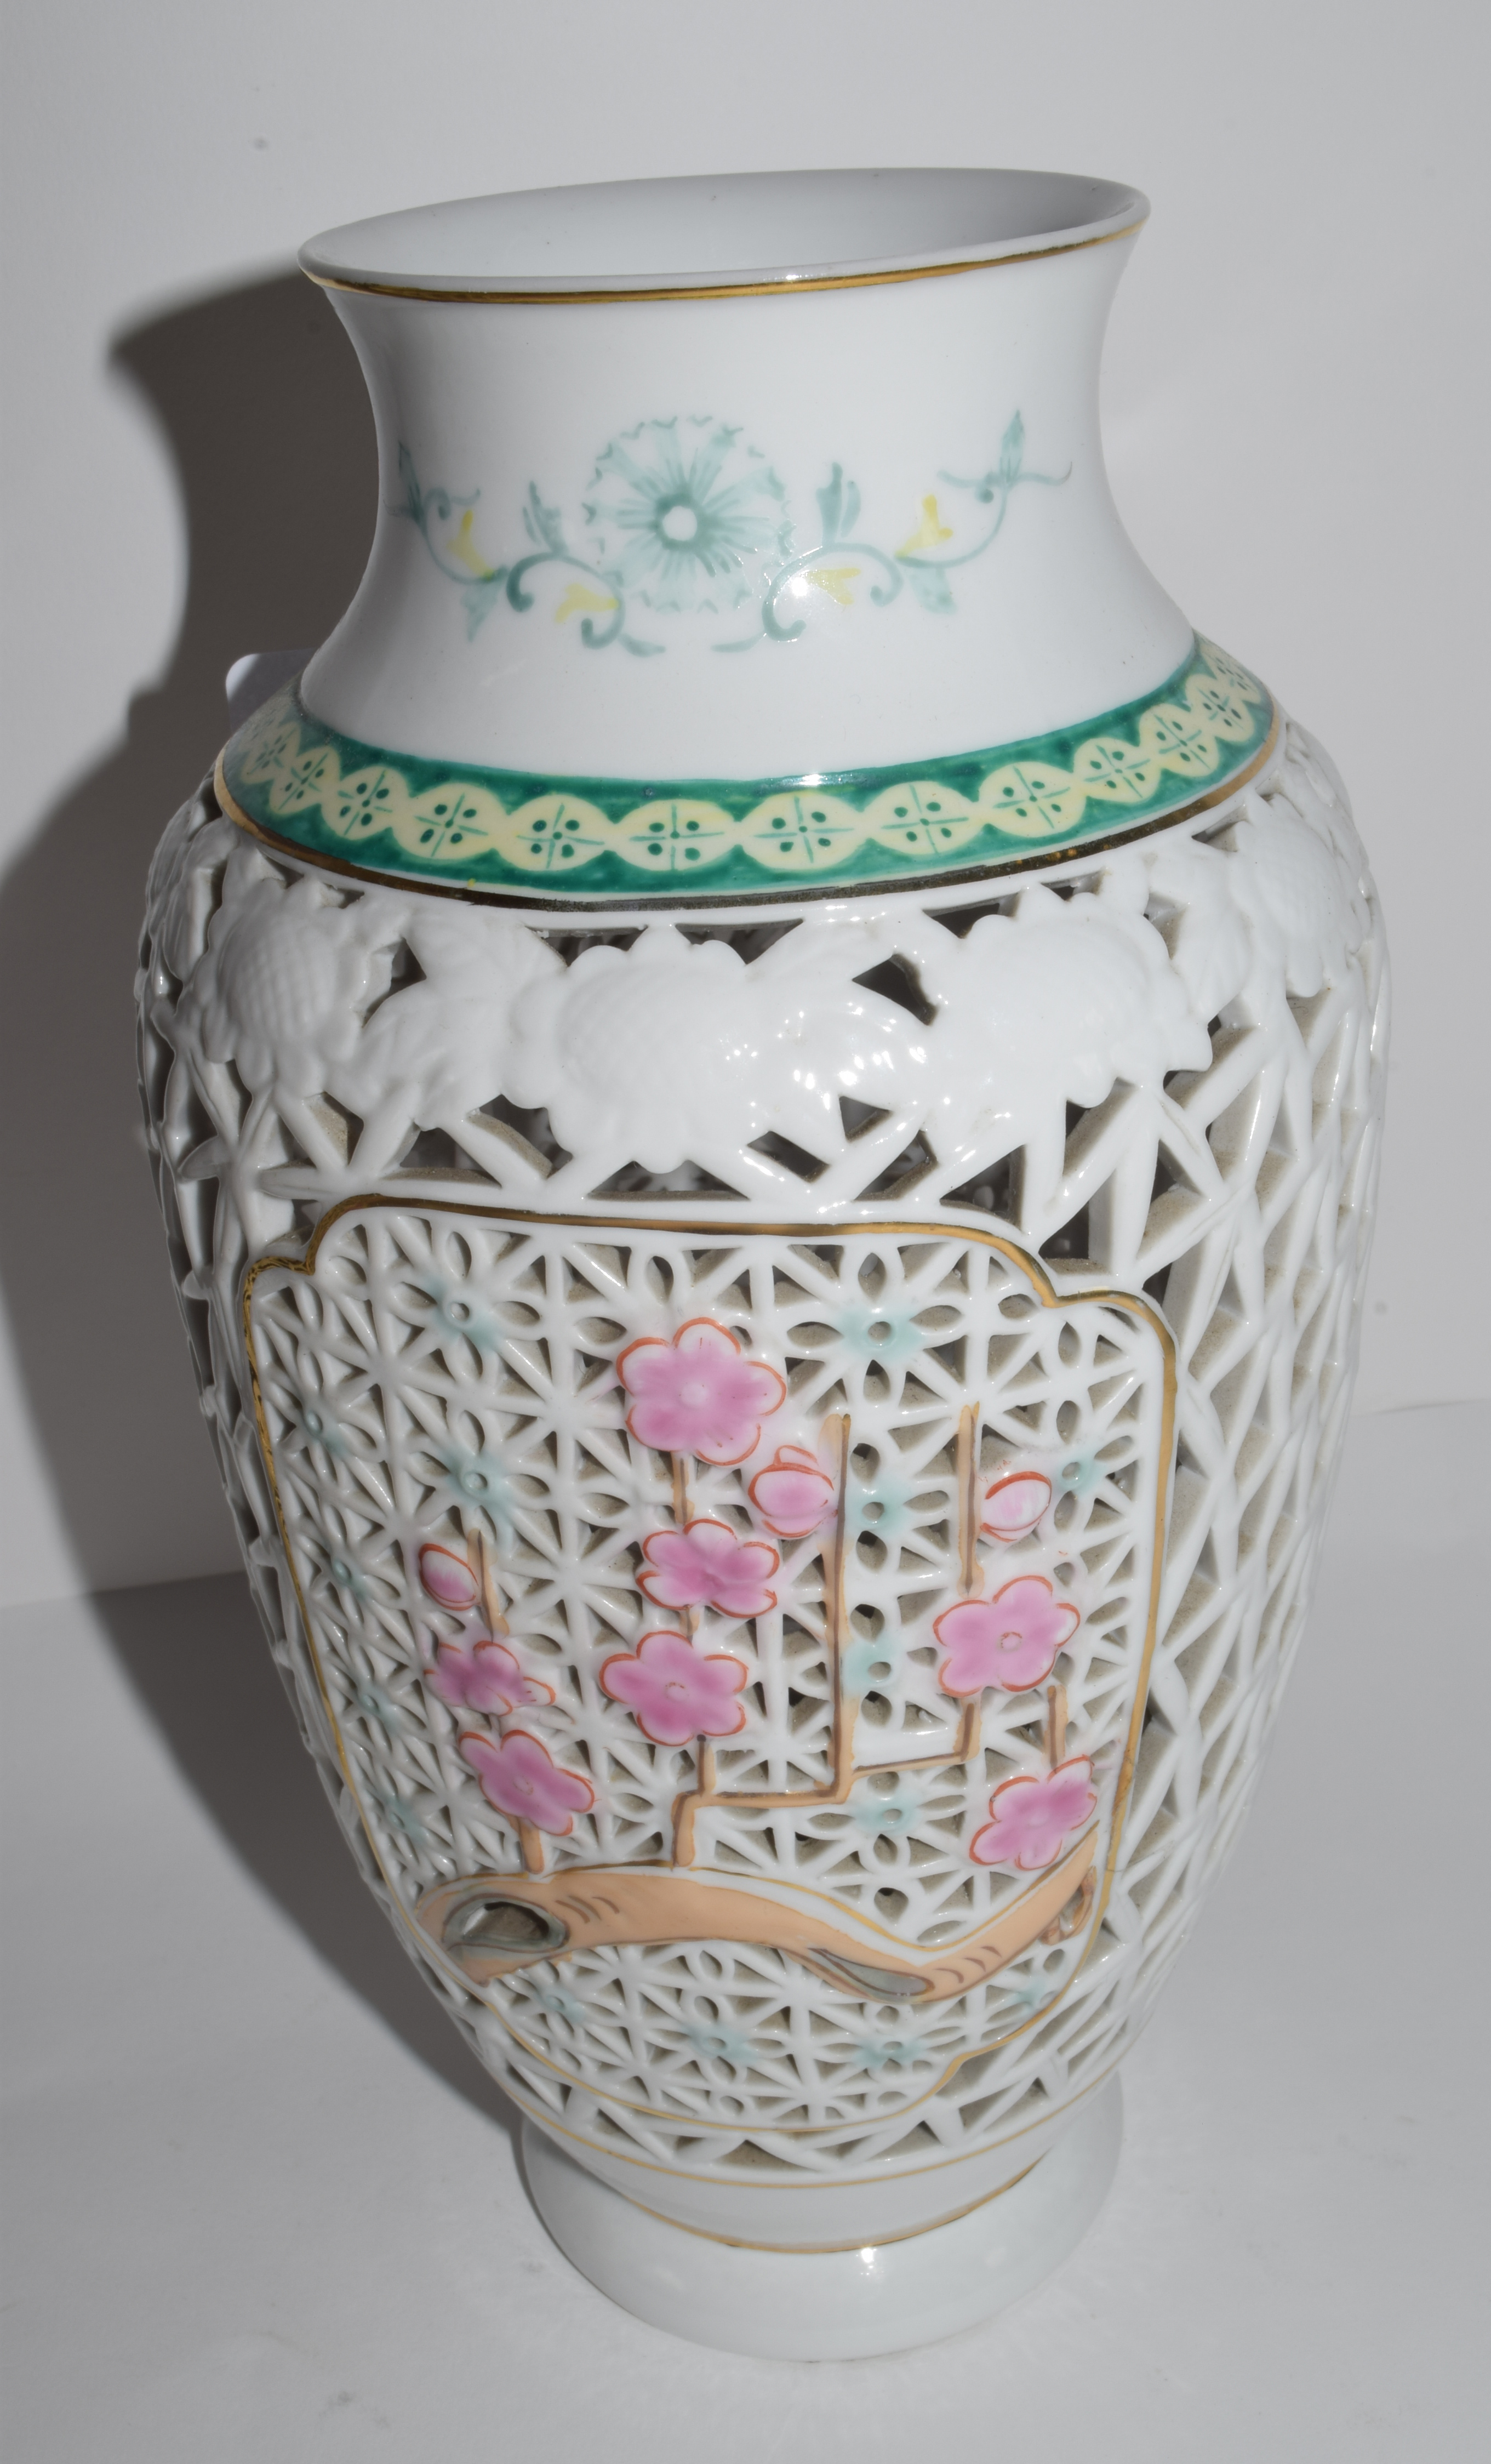 Modern pair of Oriental vases with a pierced design and pink flowers (2), 20cm high - Image 2 of 2